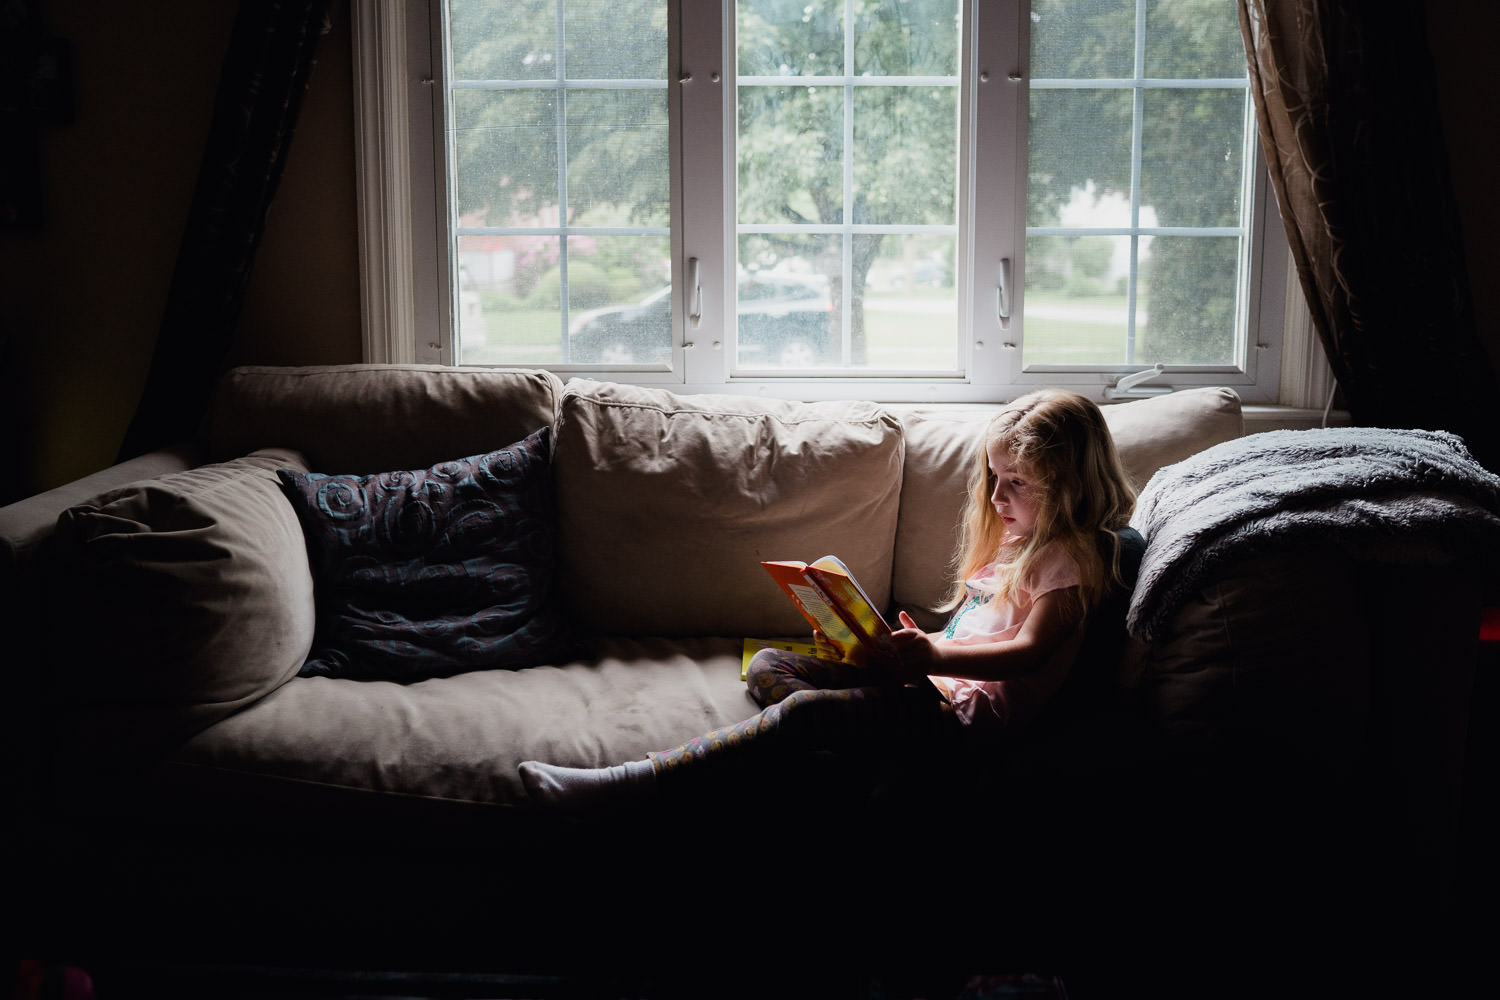 A little girl reads on a sofa.